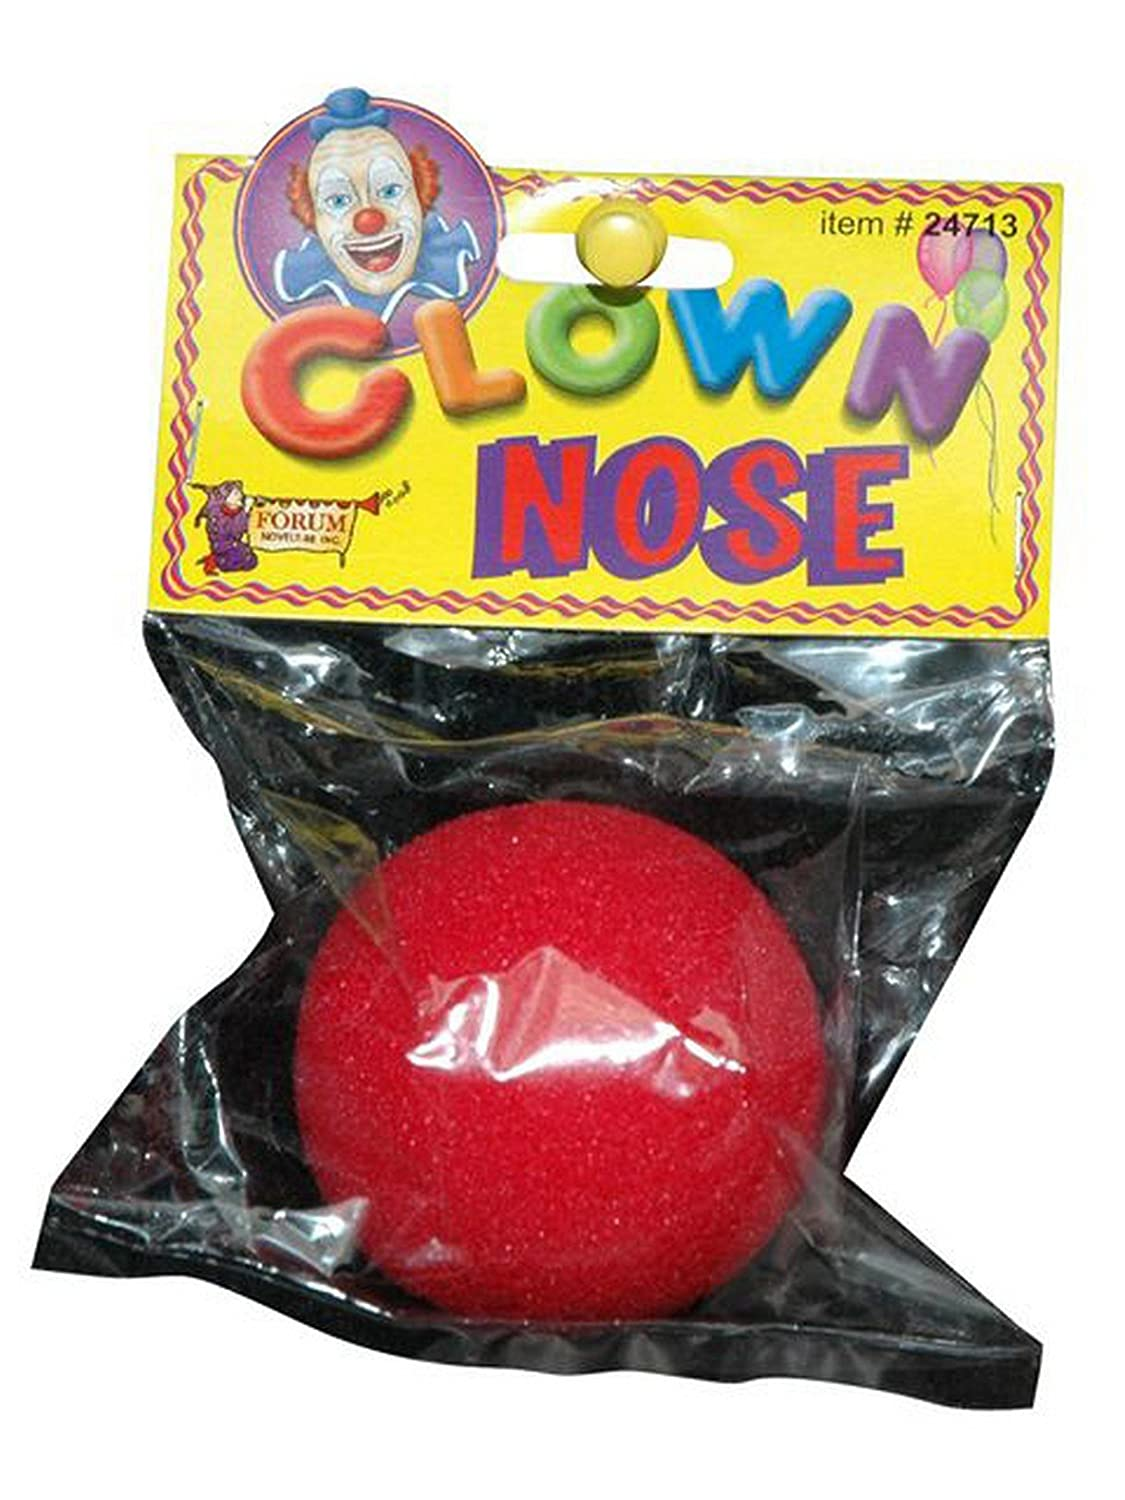 Forum Novelties Inc......... Clown Nose Red One Size 24713